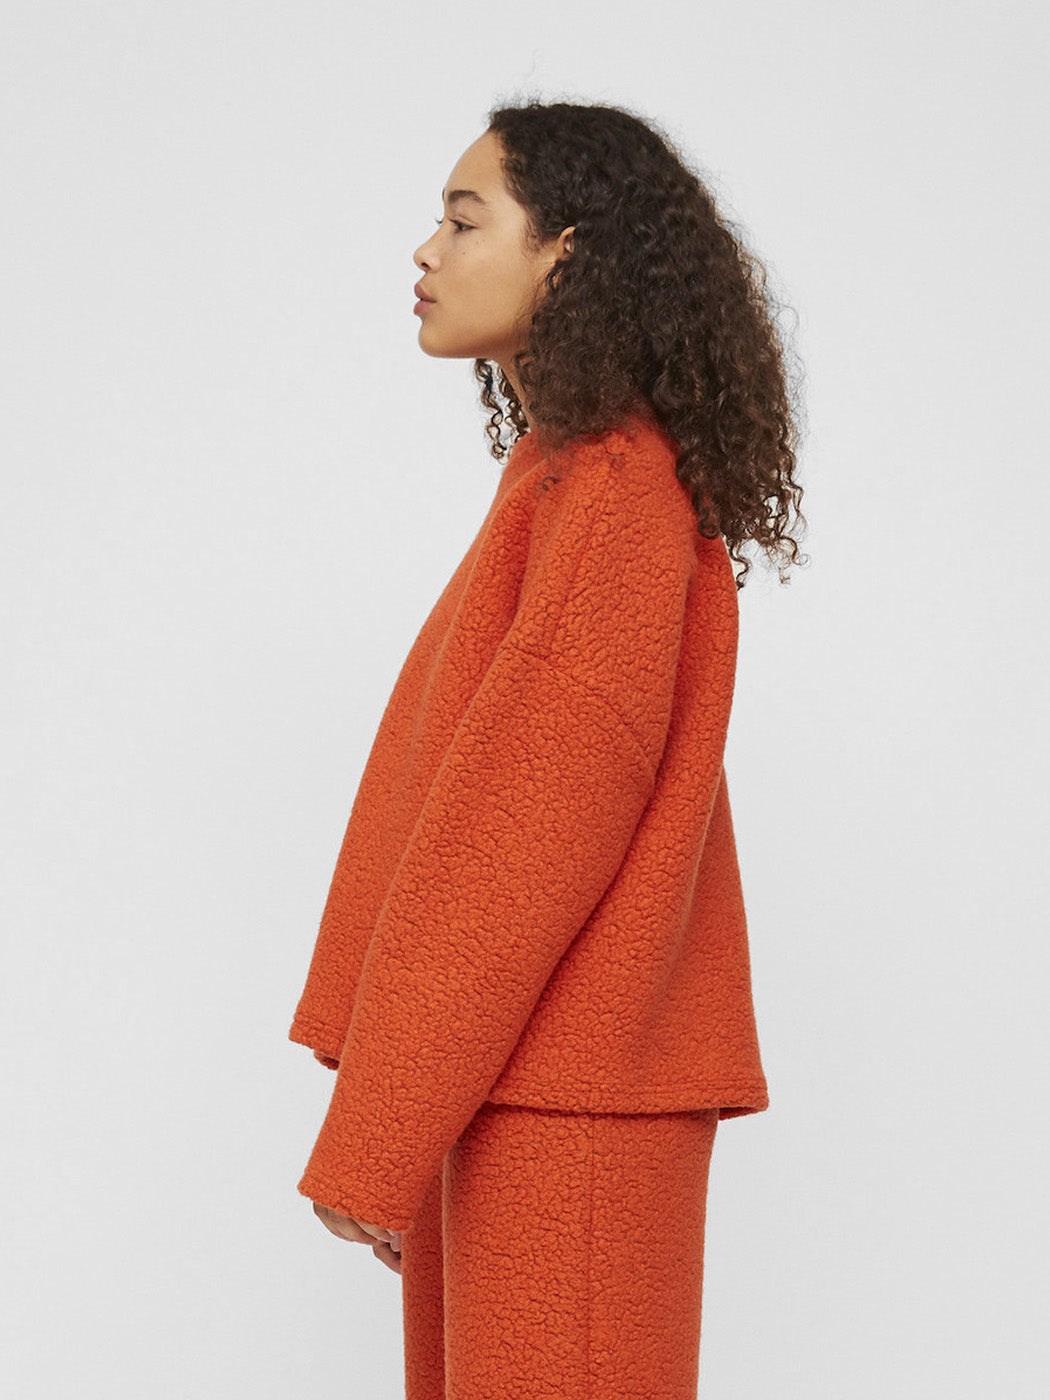 Rita Row - Sweatshirt / Orange